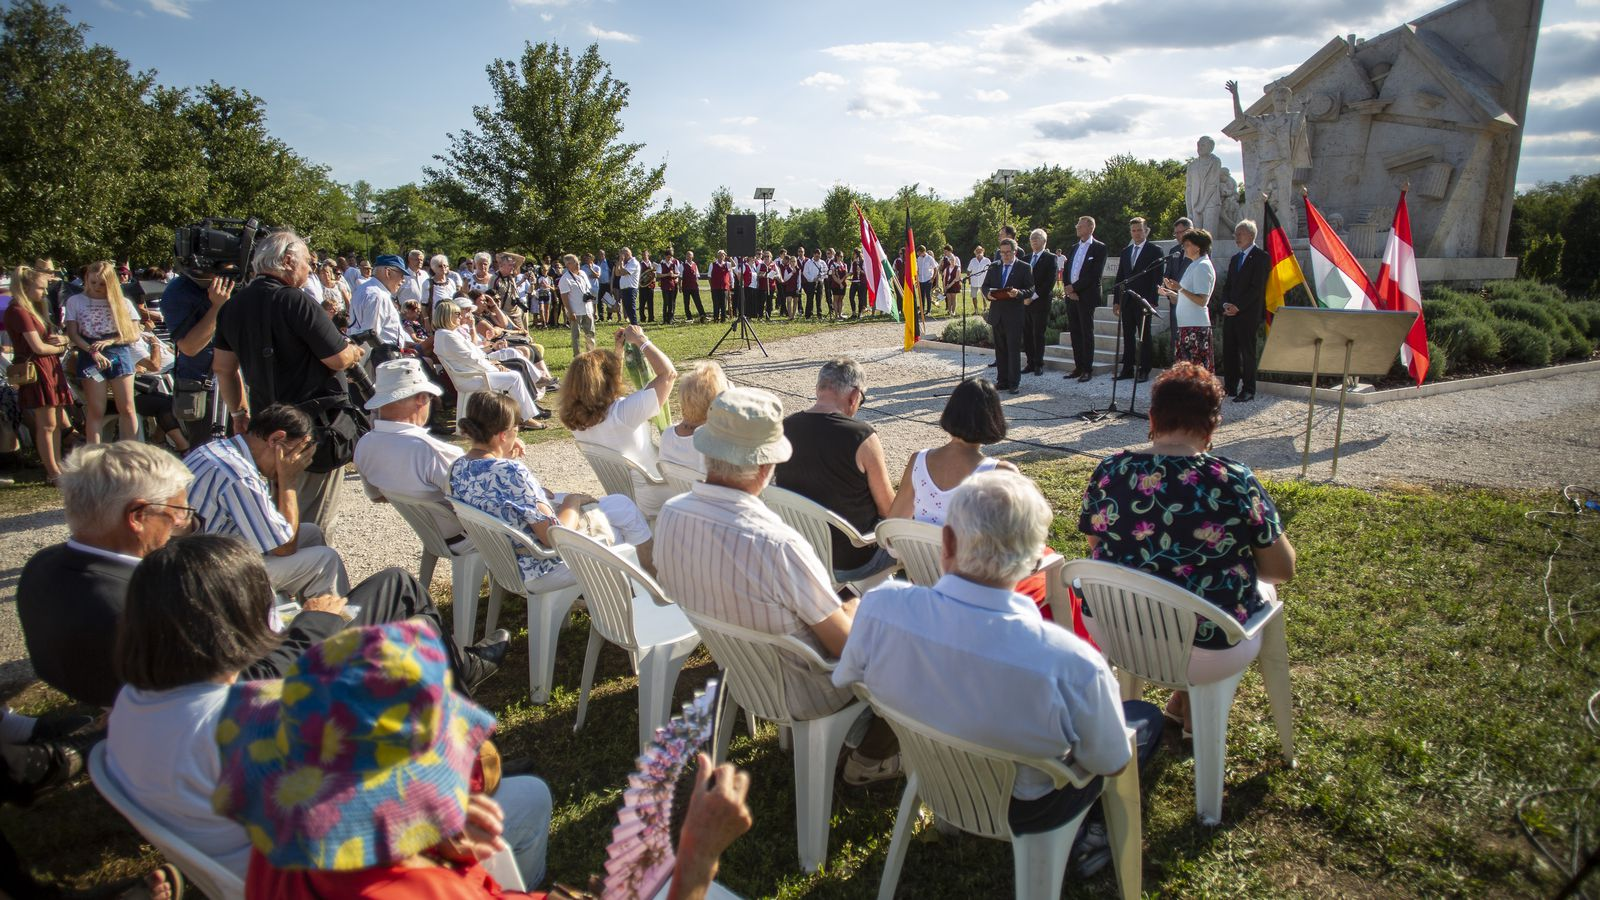 #PIKNIK30 – Commemoration in Sopronpuszta